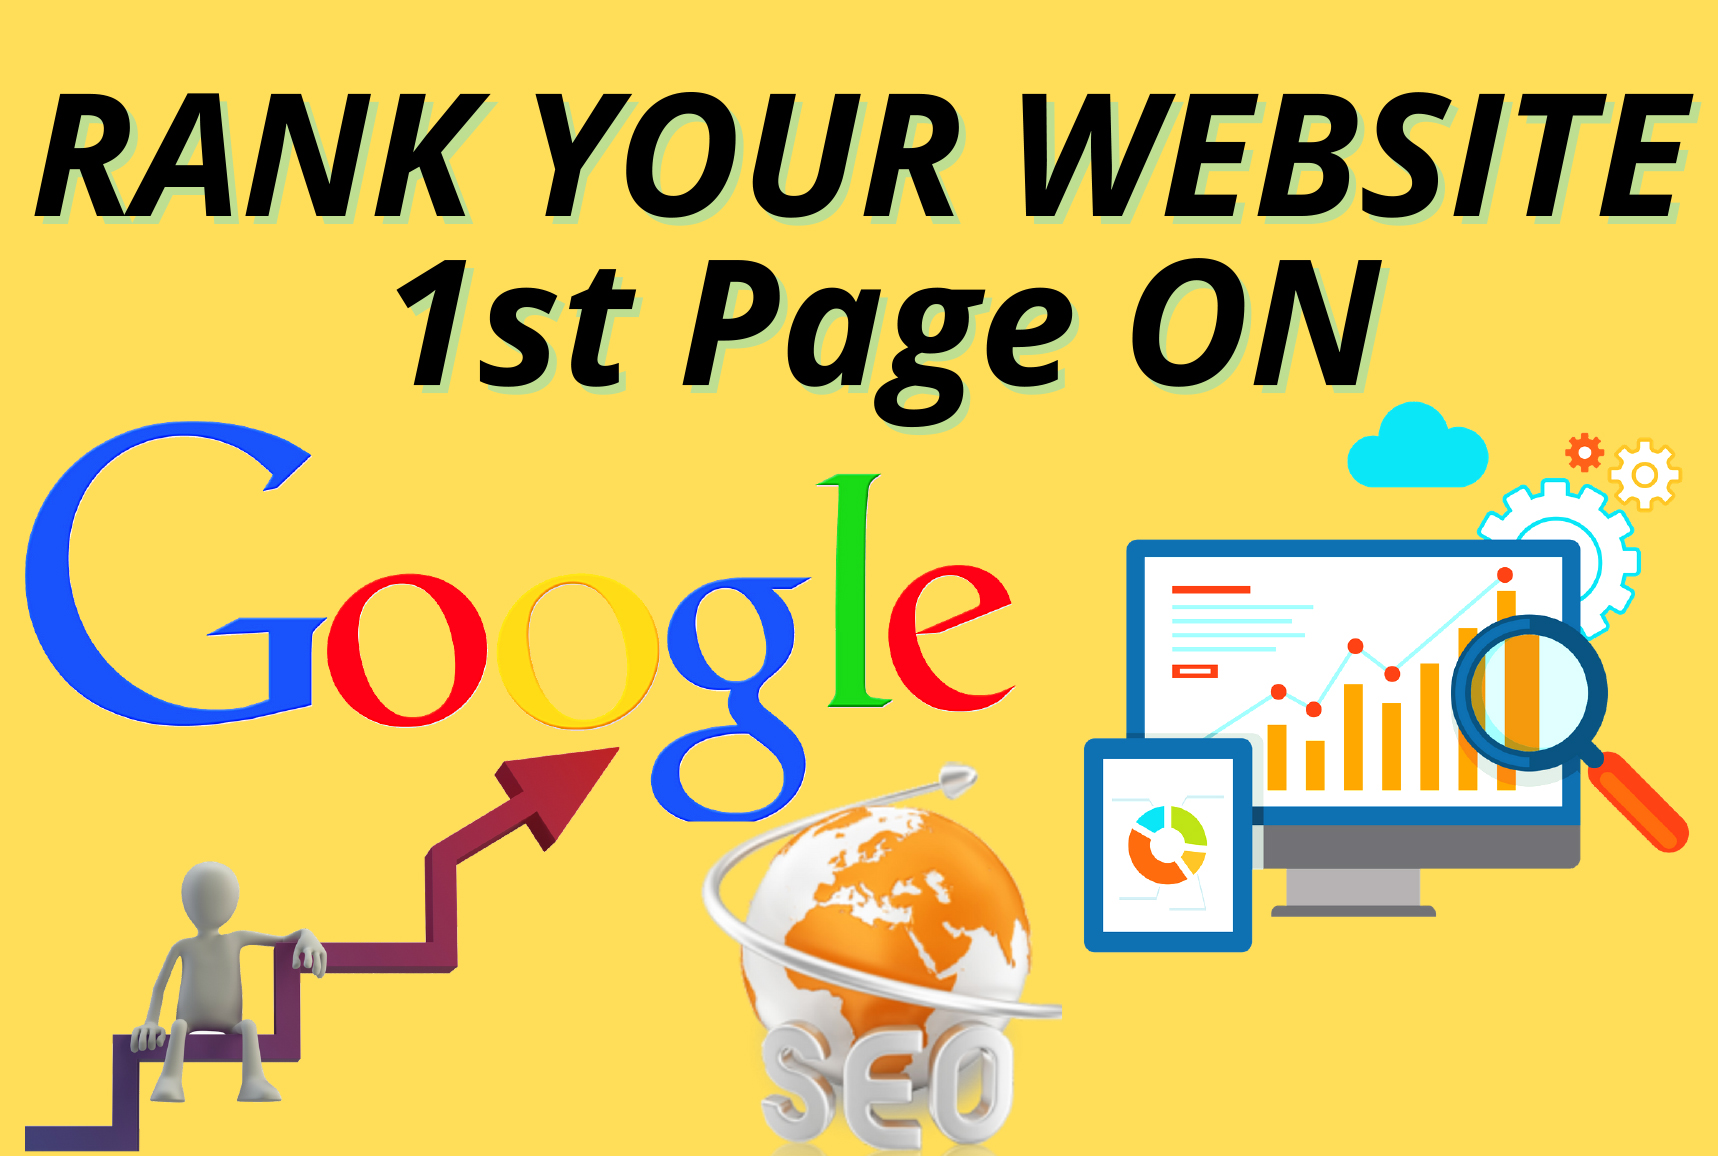 I Will Offer Your Website Guaranteed 1st Page Rank on Google by Exclusive Backlinks